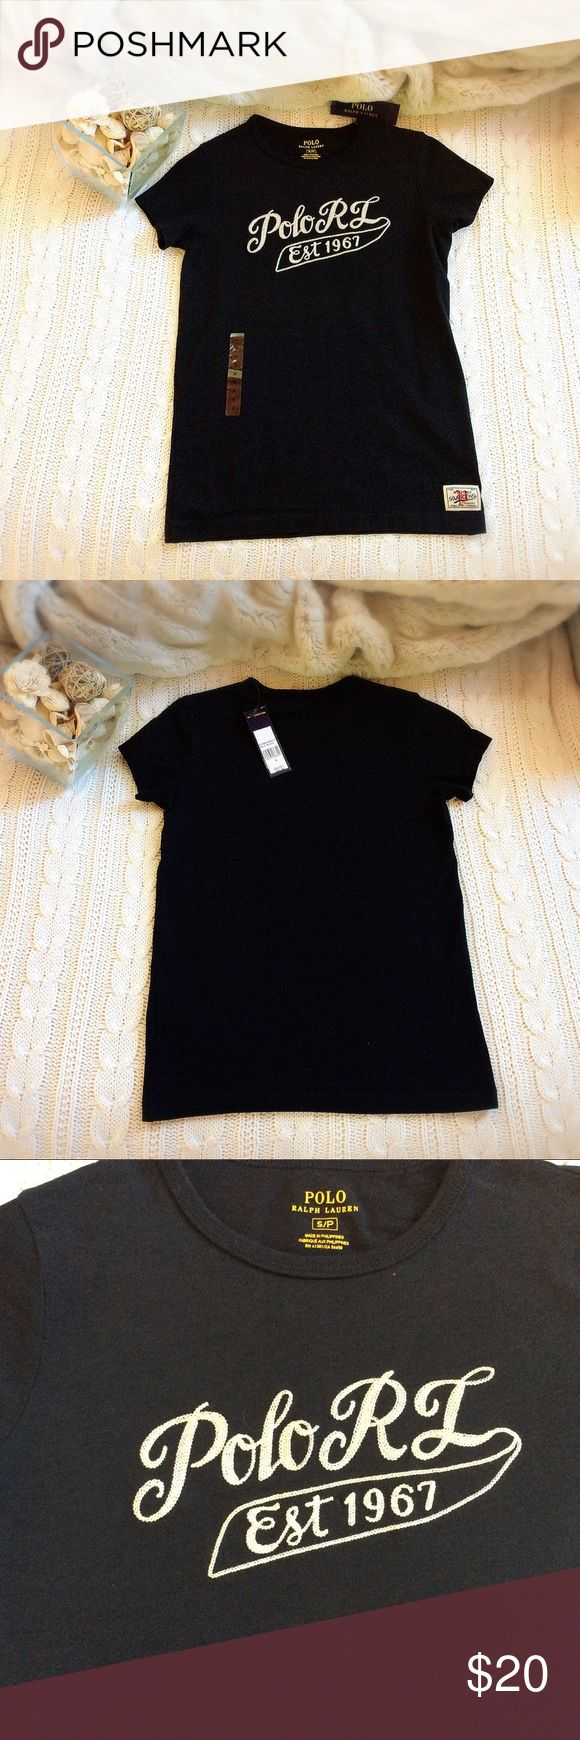 "Polo Ralph Lauren Black Tee, S/P Polo Ralph Lauren woman black Tee T-shirt with embroidery ""Polo RL Est 1967"" in white, New with tag  Item description: Size - SP Petite Small Color - Black Sleeves - short sleeve Material - 100% Cotton  Measurement (approximate Laying flat): Length - 24 inches Shoulder to shoulder - 13.5 inches Underarm to underarm - 16 inches  Care instruction: Machine wash cold Polo by Ralph Lauren Tops Tees - Short Sleeve"